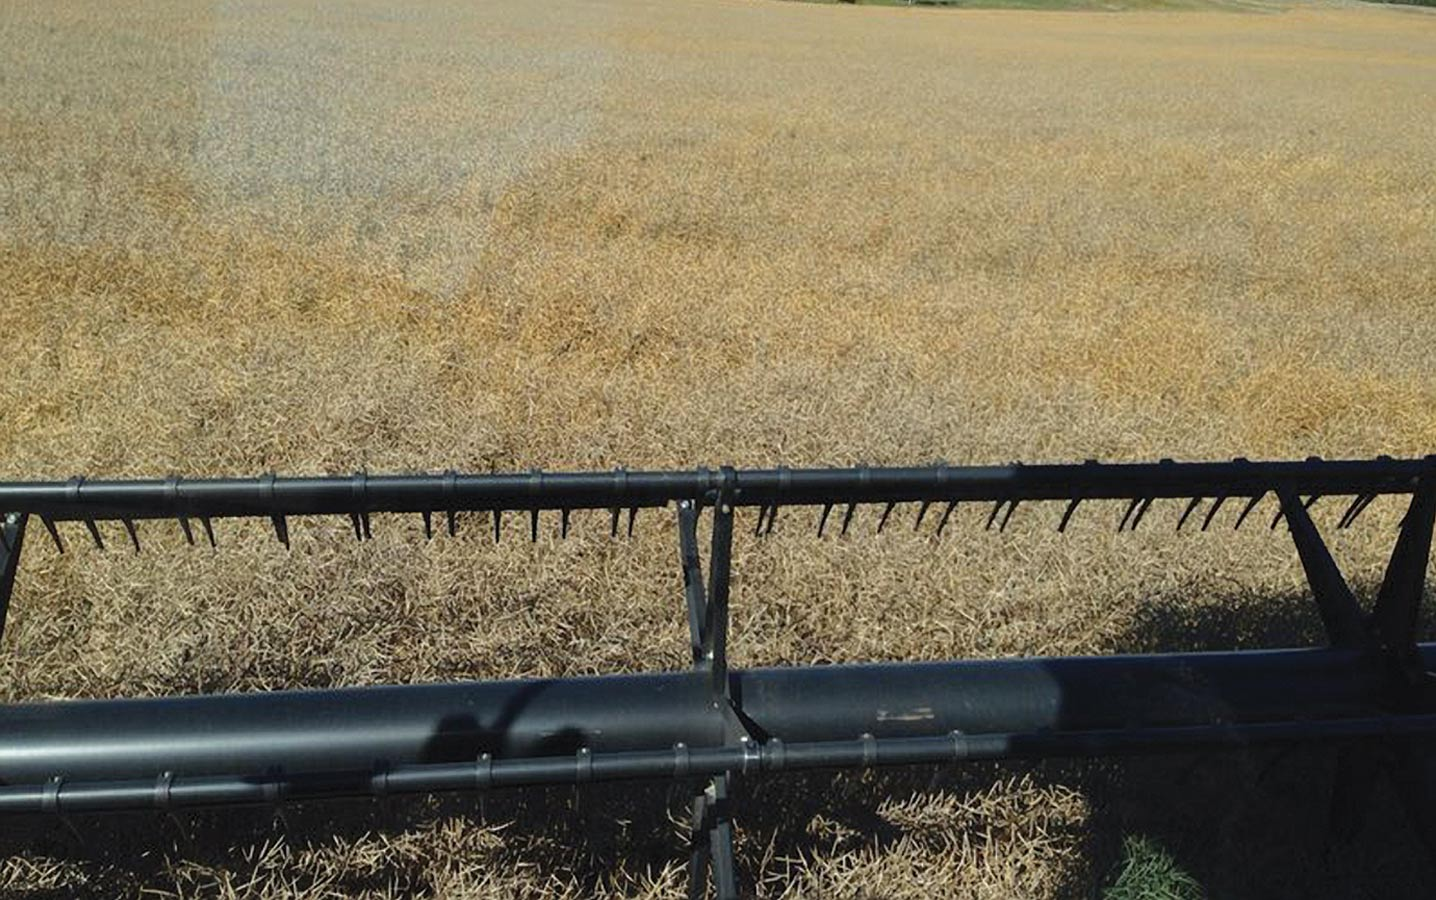 Studies have found that lower harvest losses in canola are associated with higher yield potential, especially when straight combining. This could be attributed to the additional strategies high-yielding growers carry out earlier in the season, such as seeding early, early weed control and frequent field scouting.